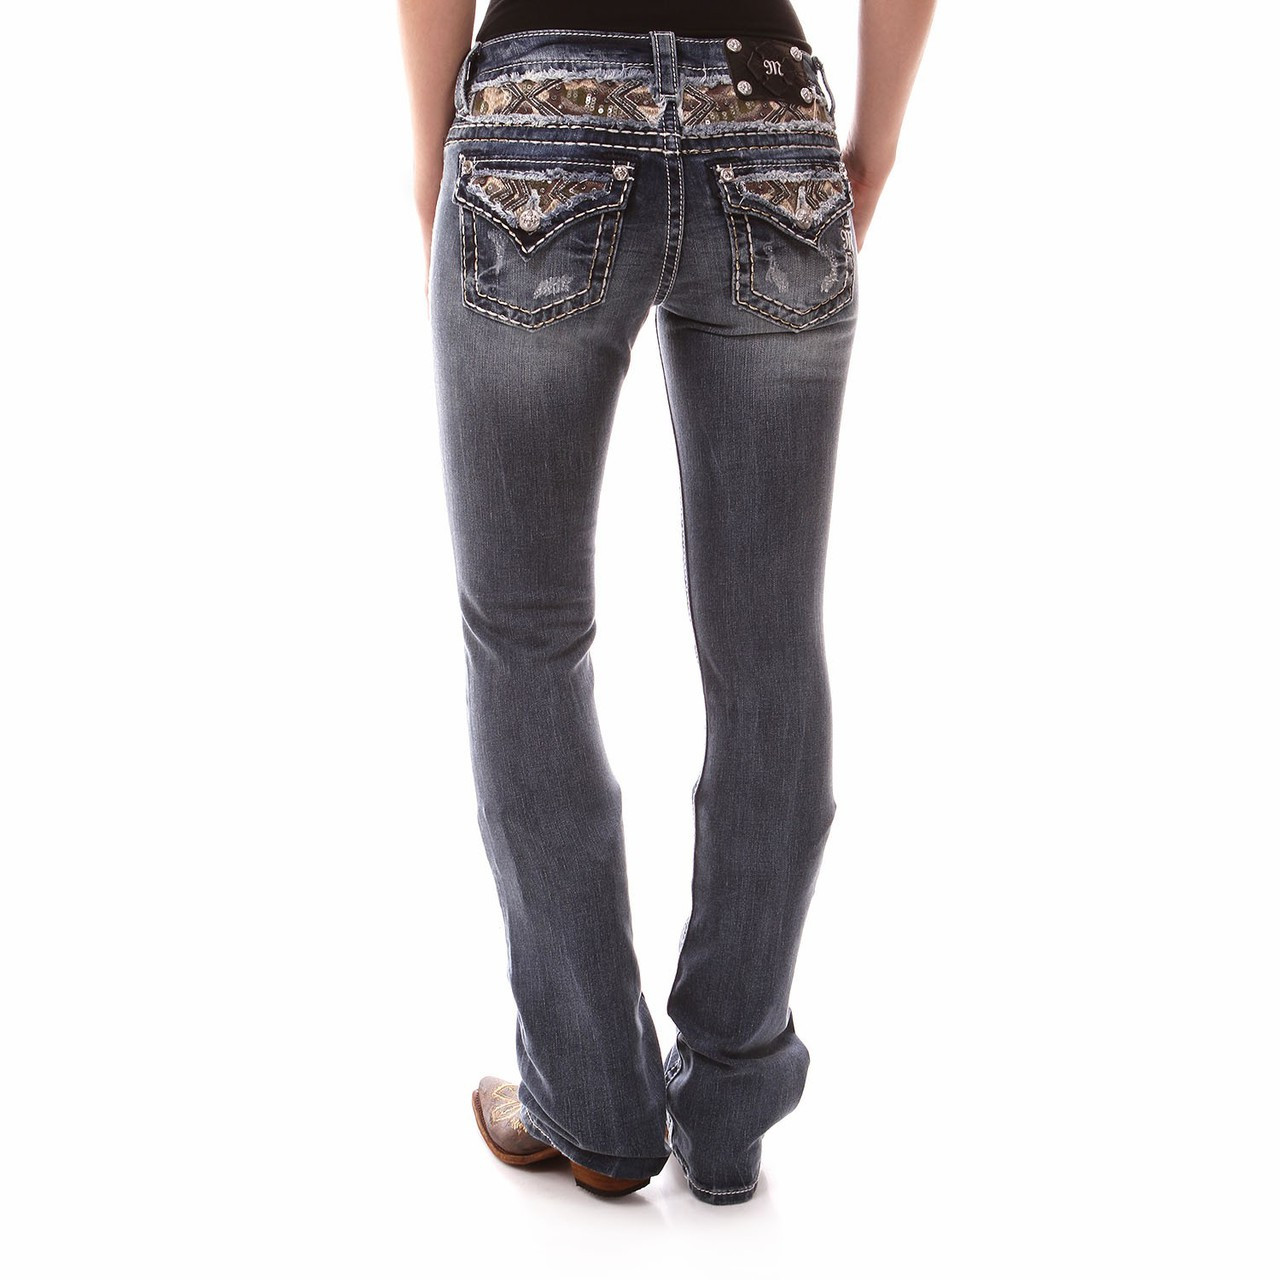 dress - Jeans me Miss for women pictures video